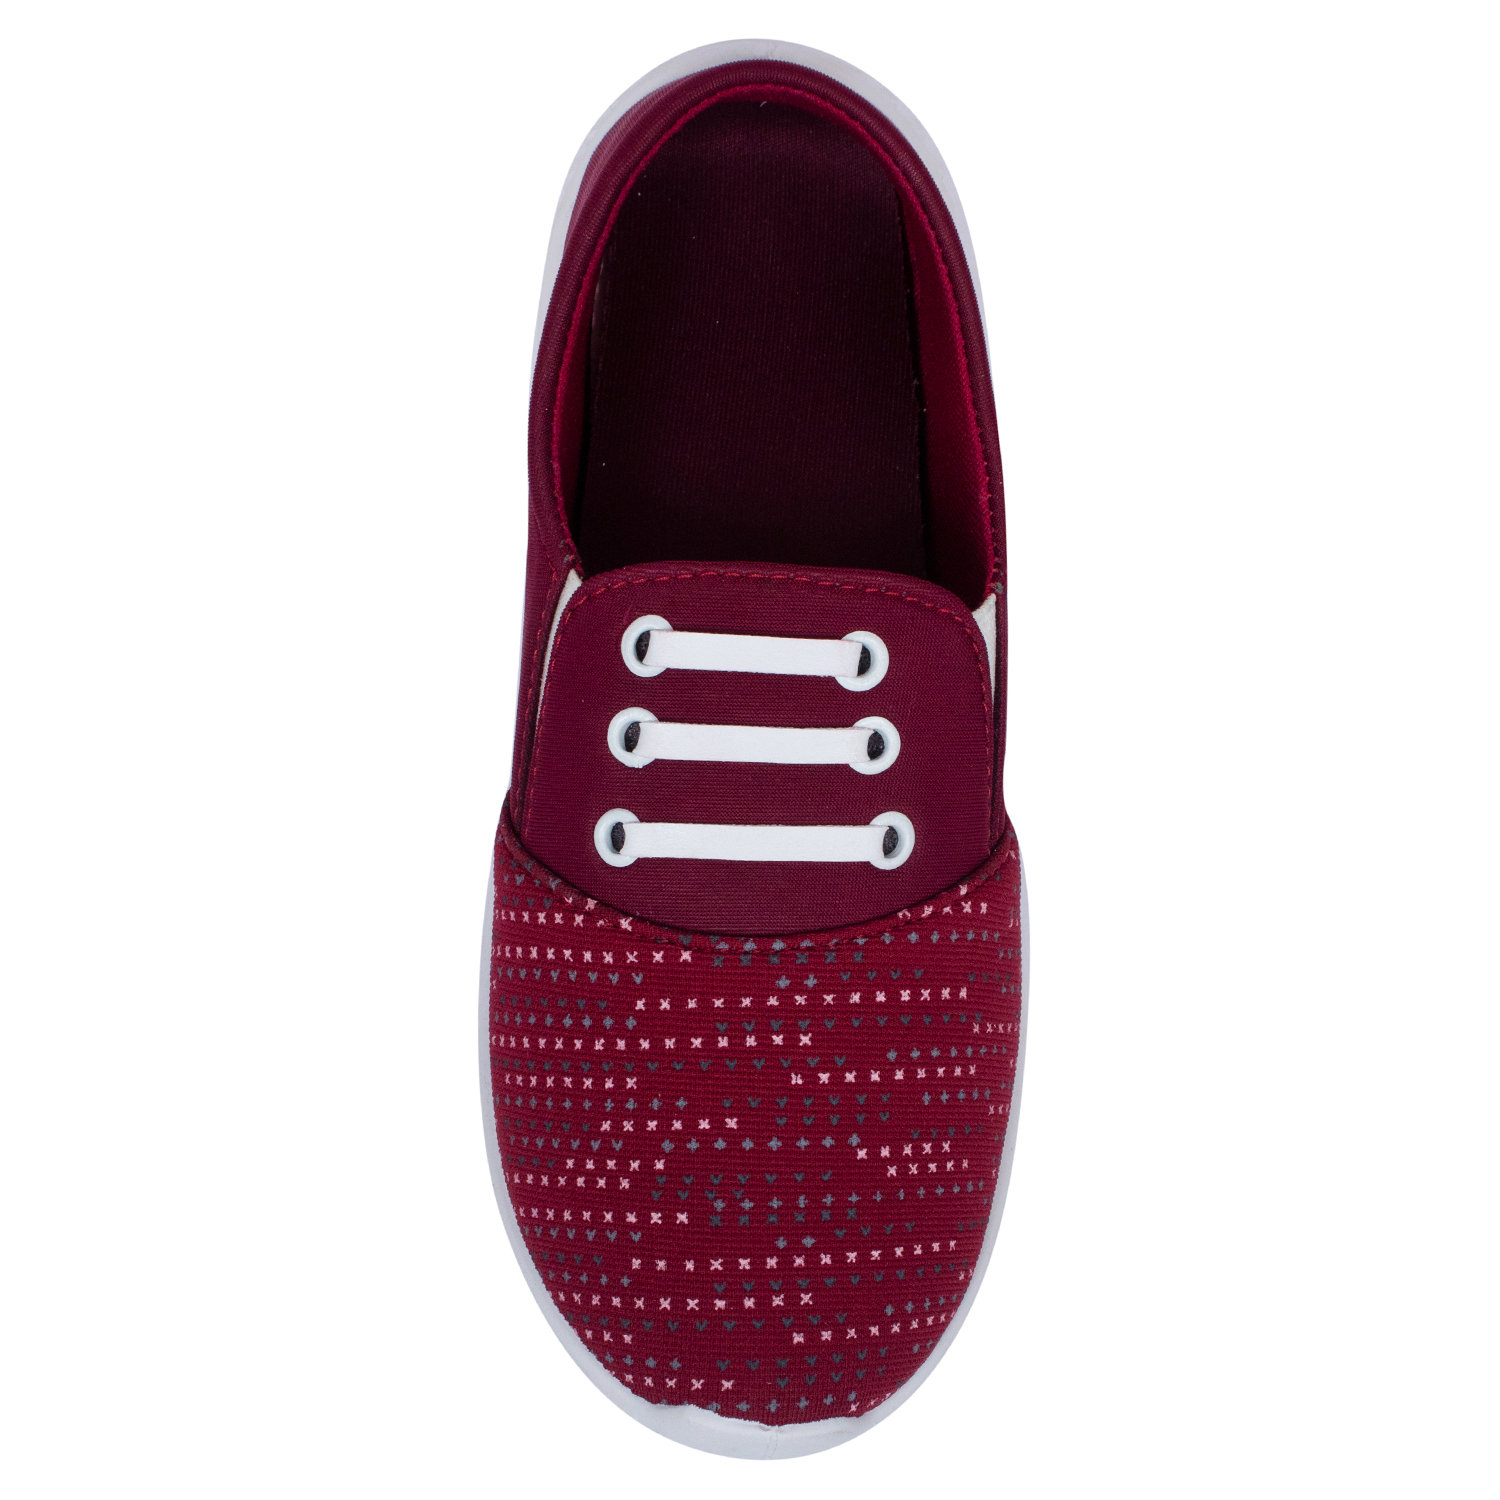 Foot Trends Women Sports Shoes R.ShinaFT-ShinaRed. (Red, 4-7, 4 PAIR)